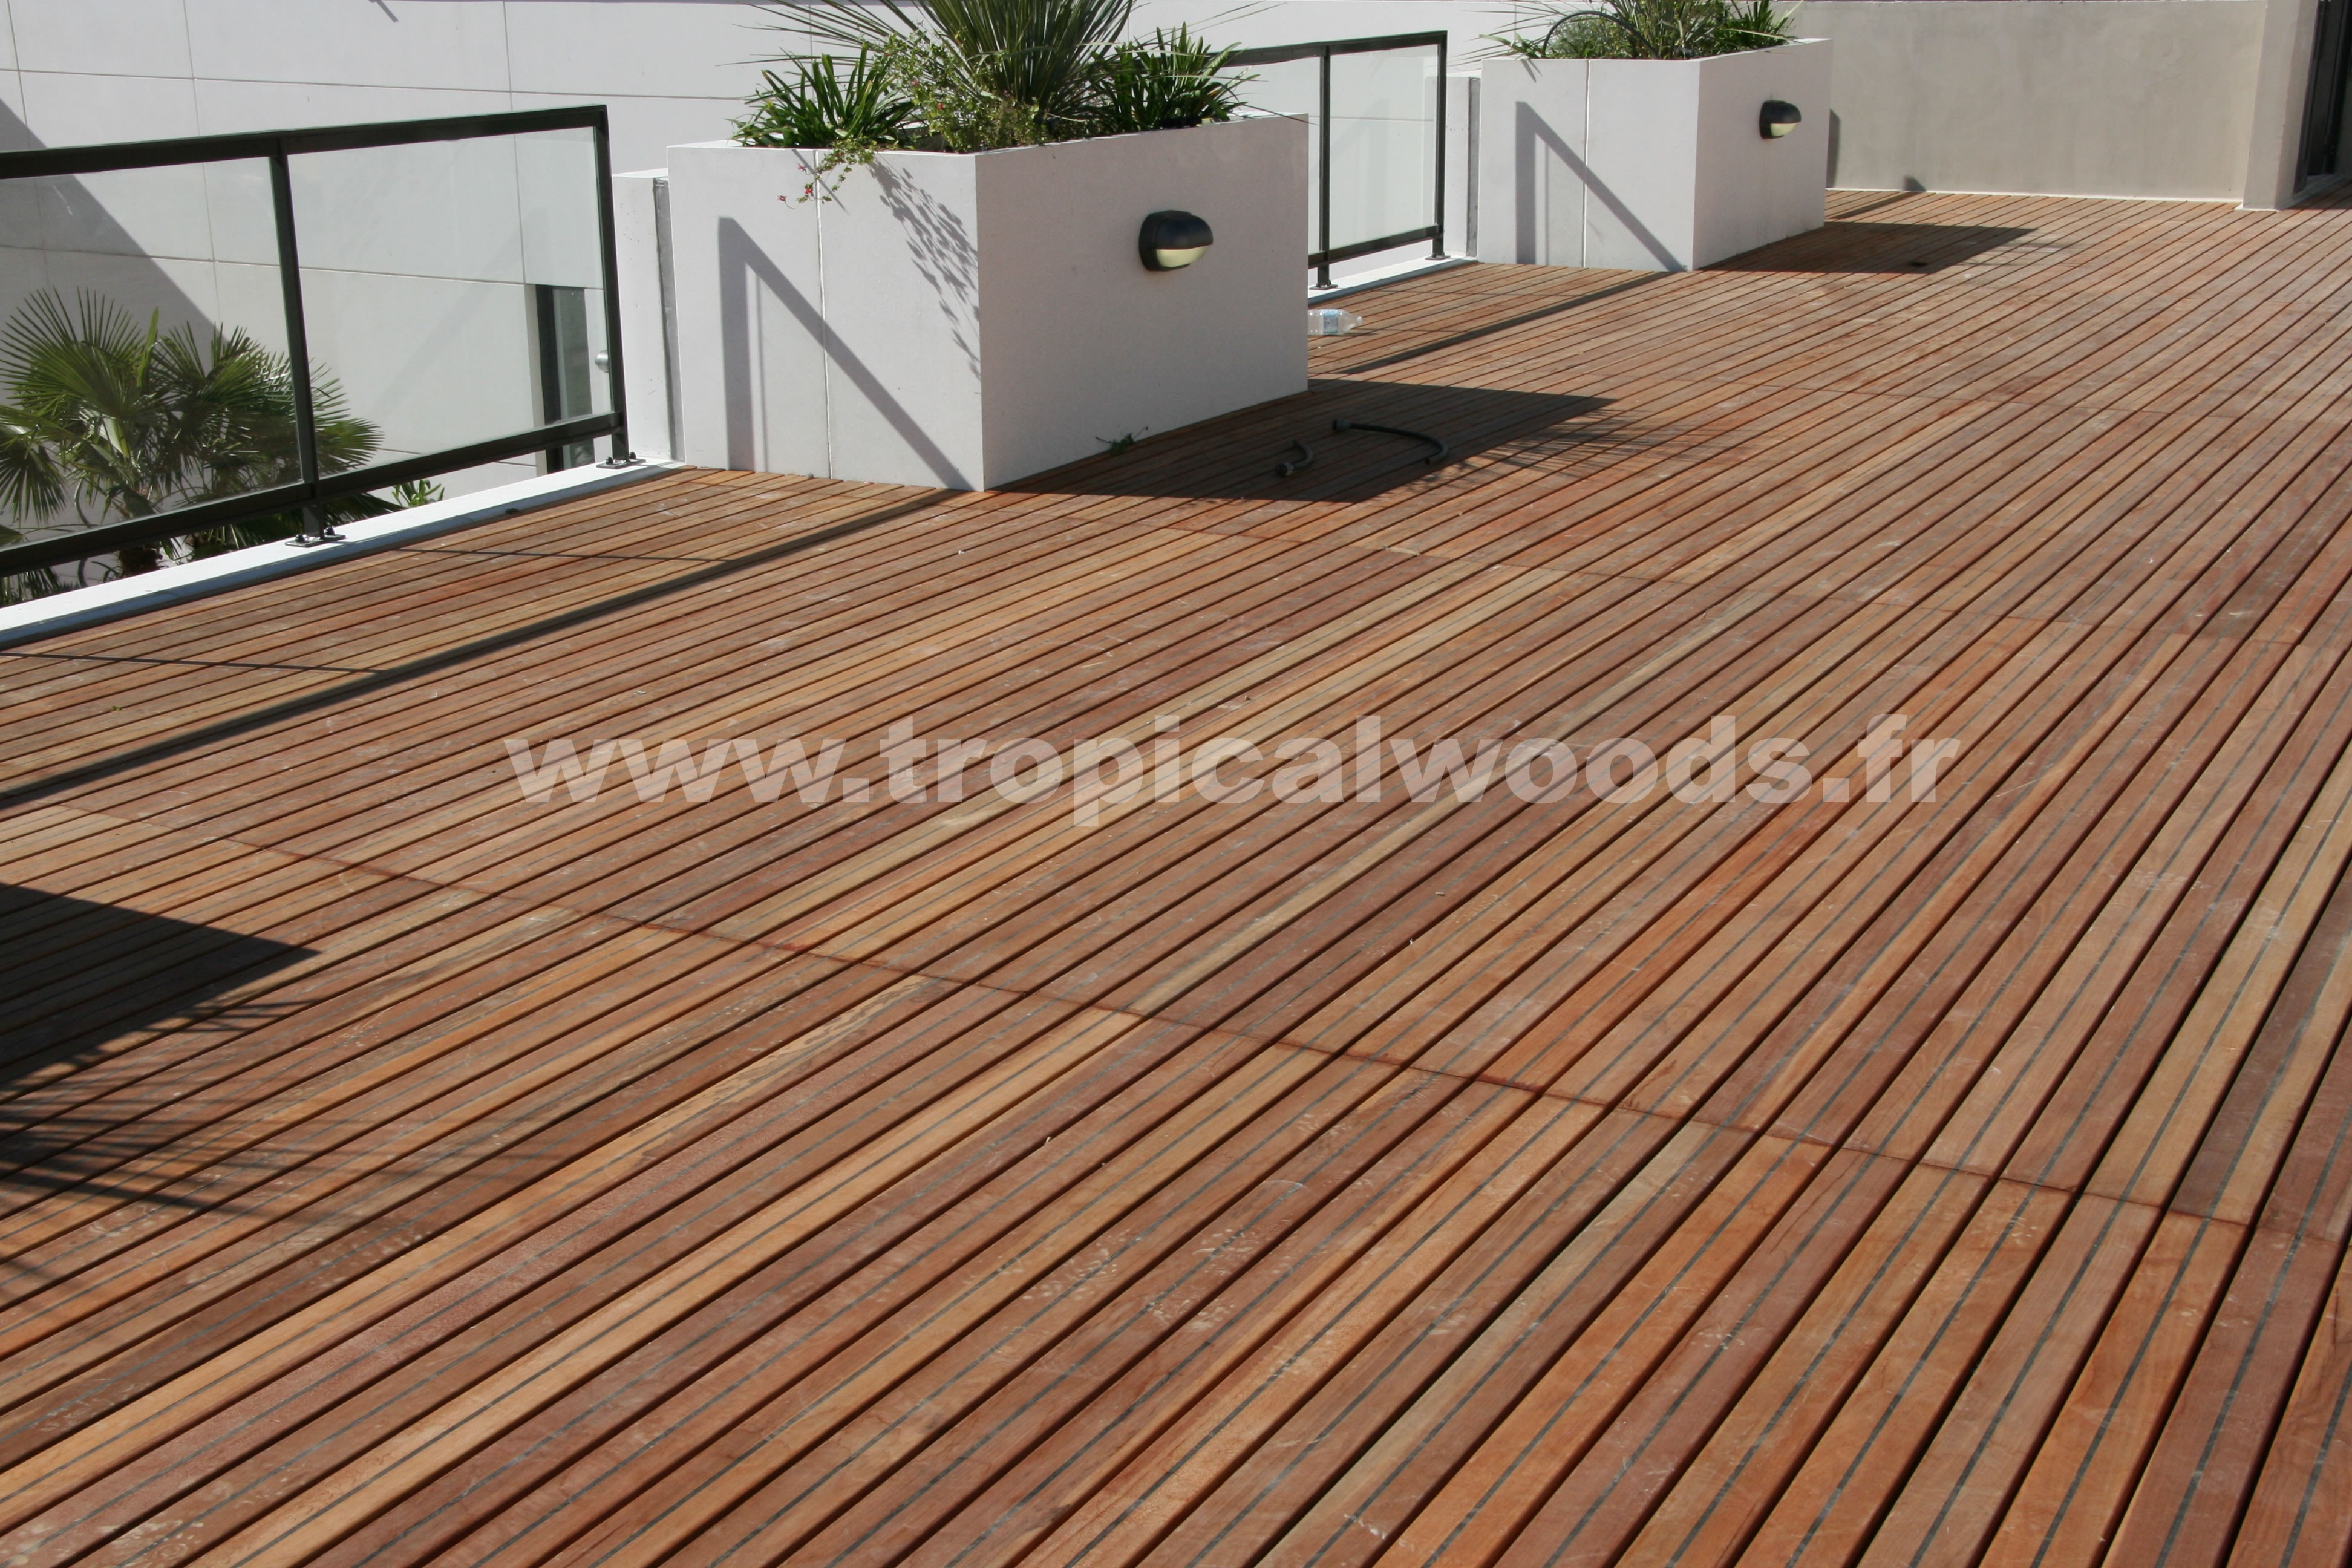 terrasse lames parquet massif red cedar pont de bateau 22 x 120 mm. Black Bedroom Furniture Sets. Home Design Ideas